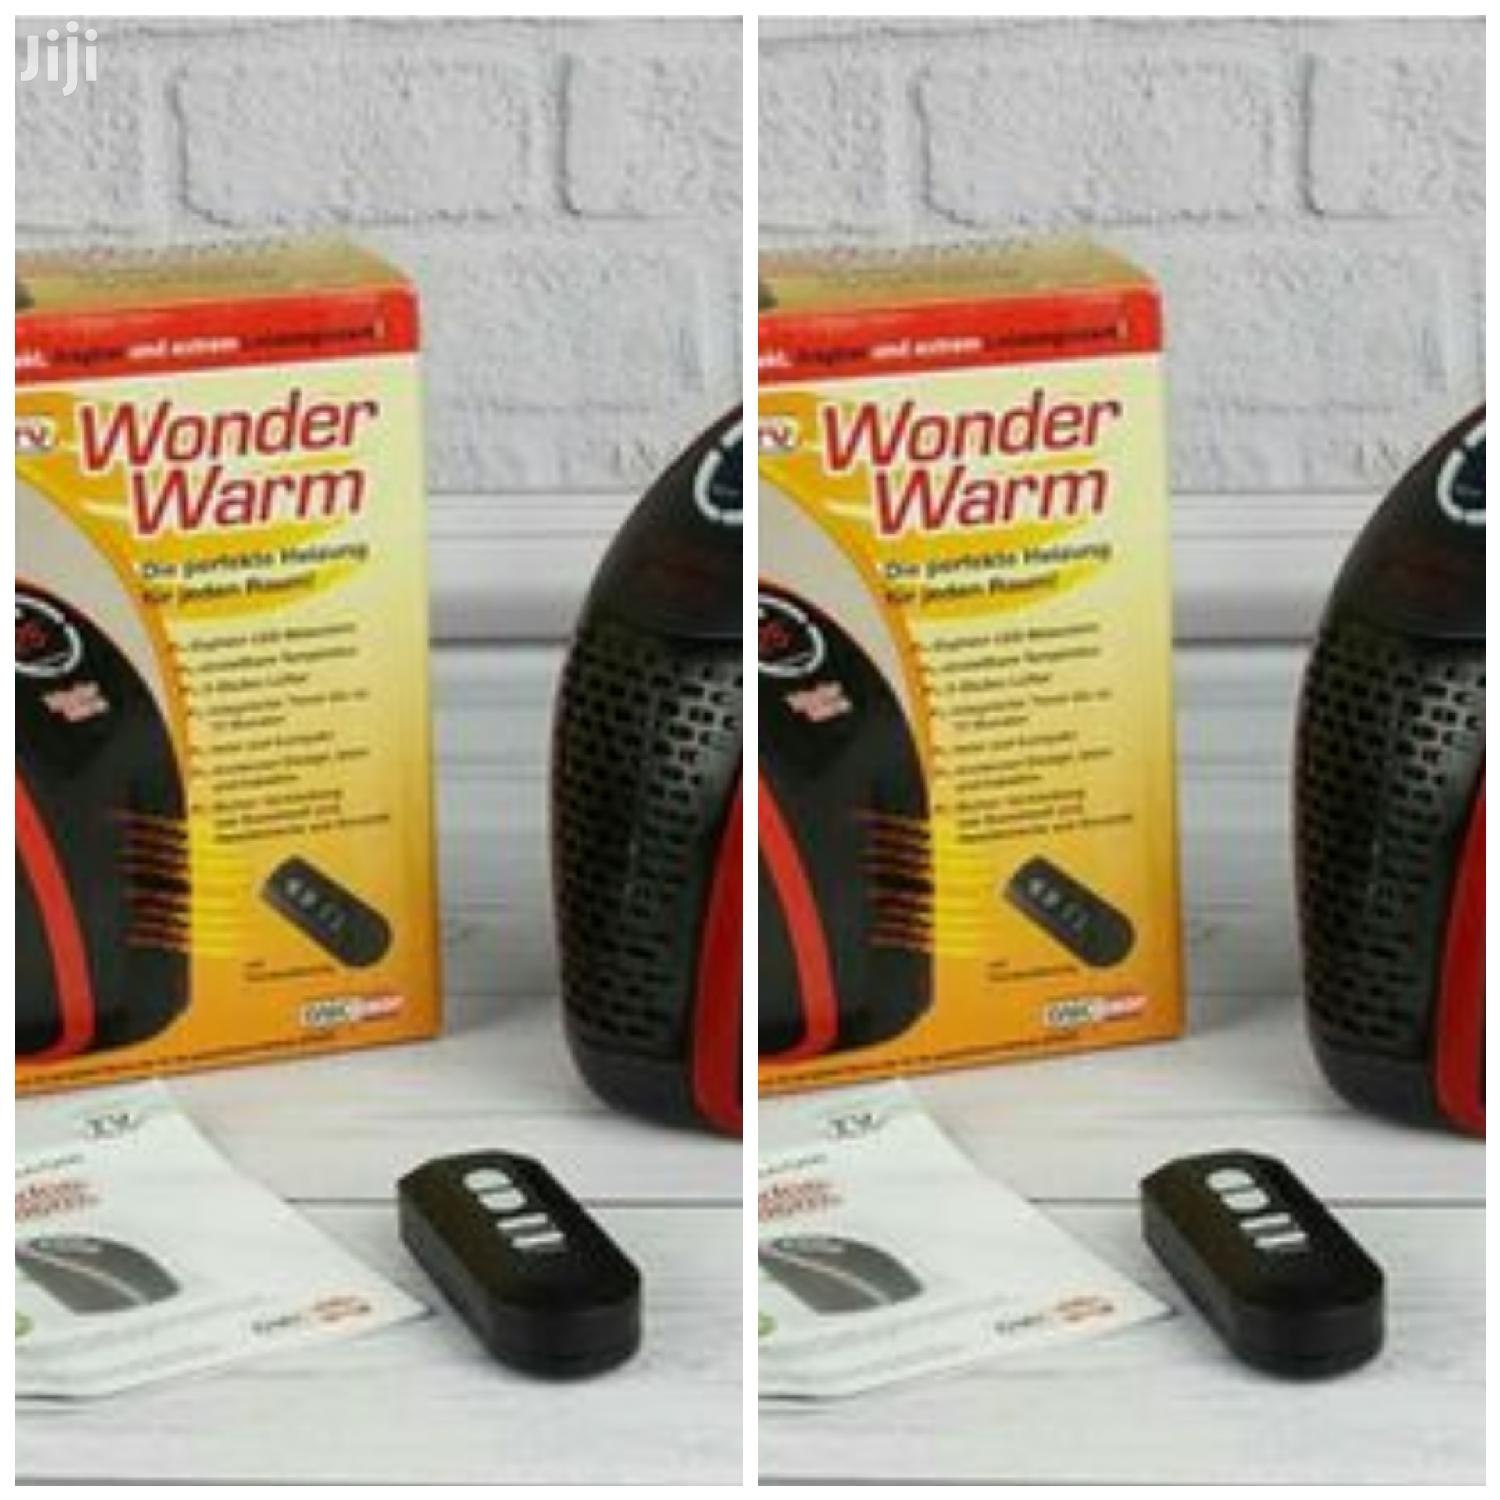 Wonder Warm Room Heater